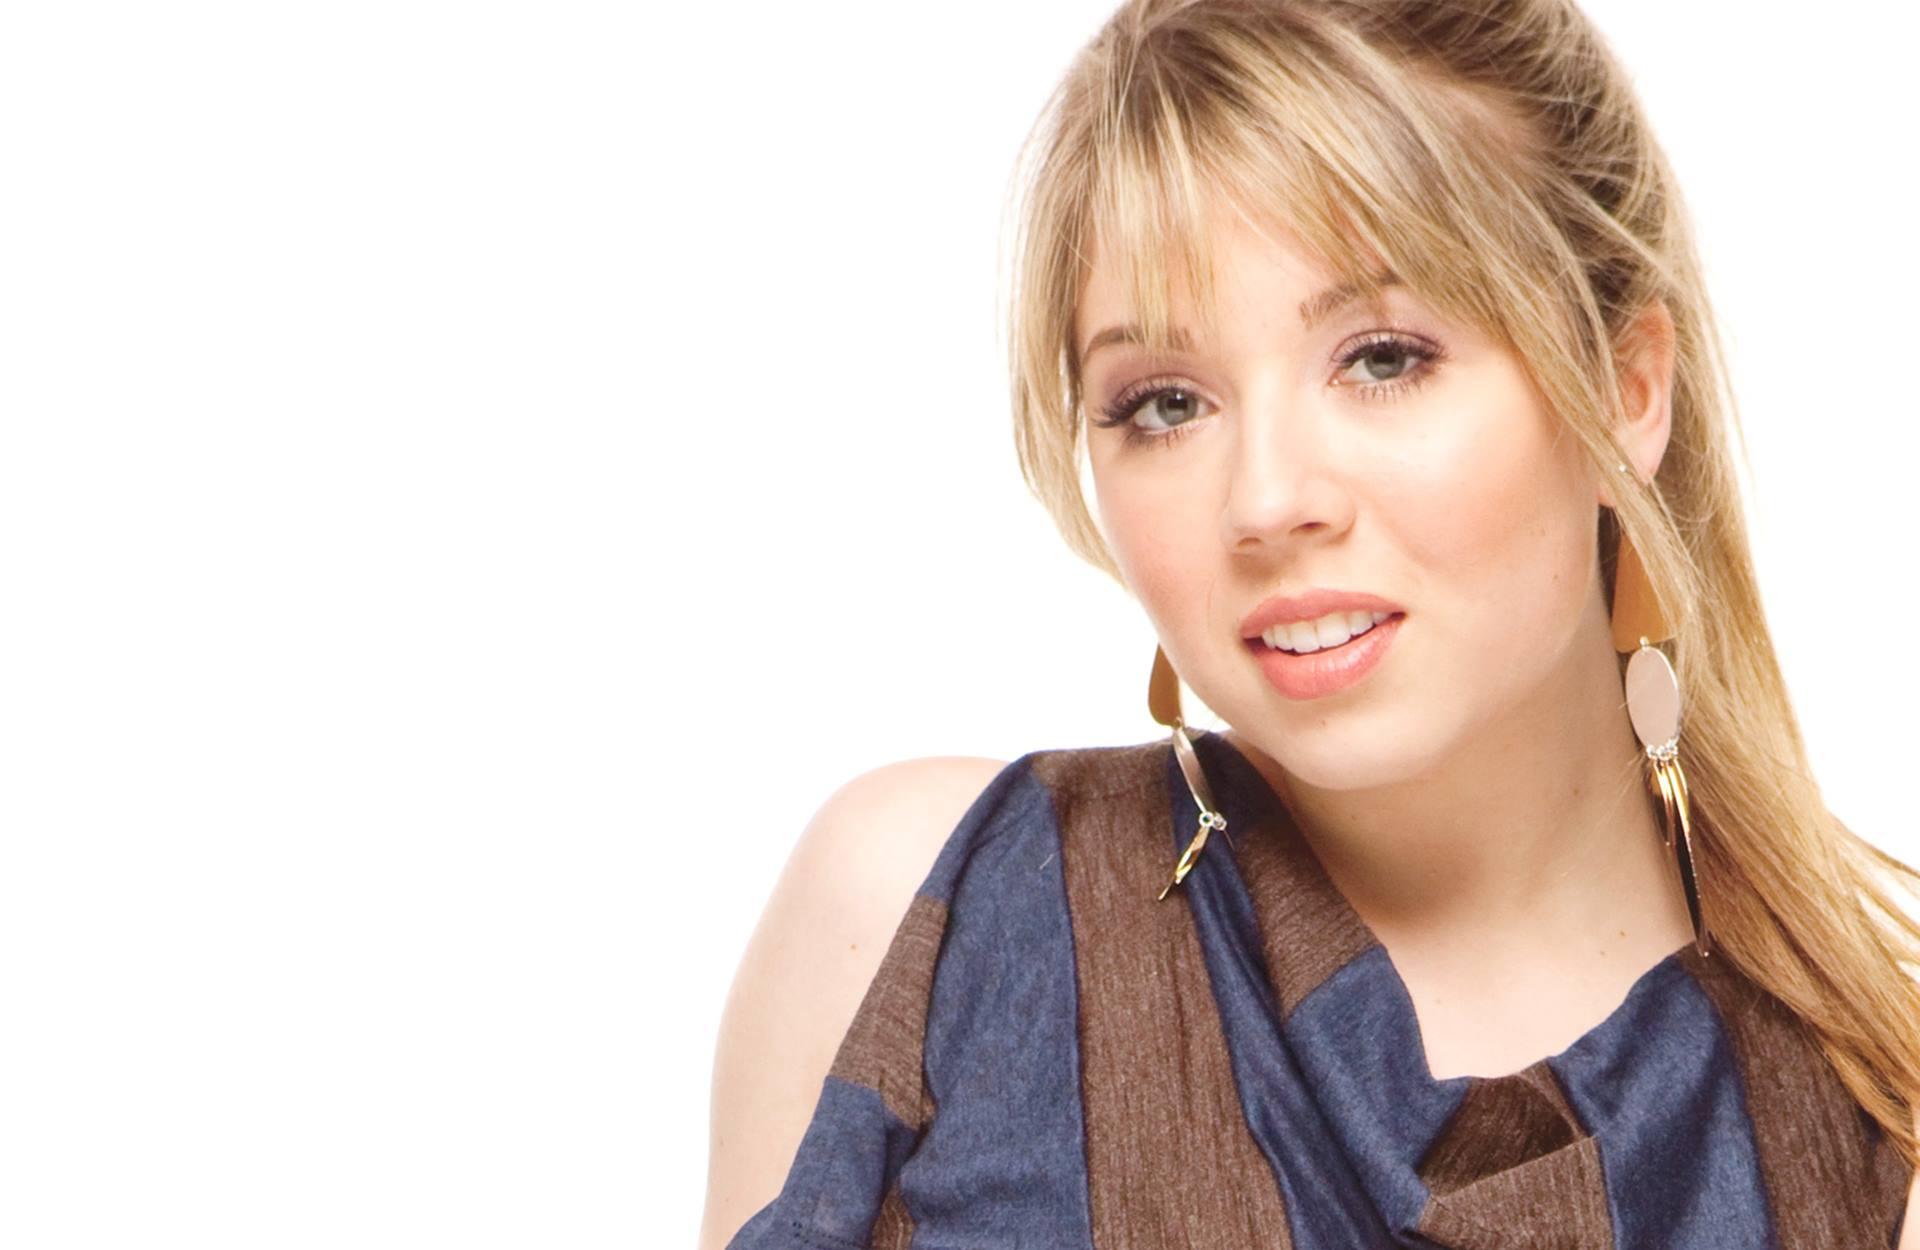 Jennette Mccurdy Wallpapers, Pictures, Images